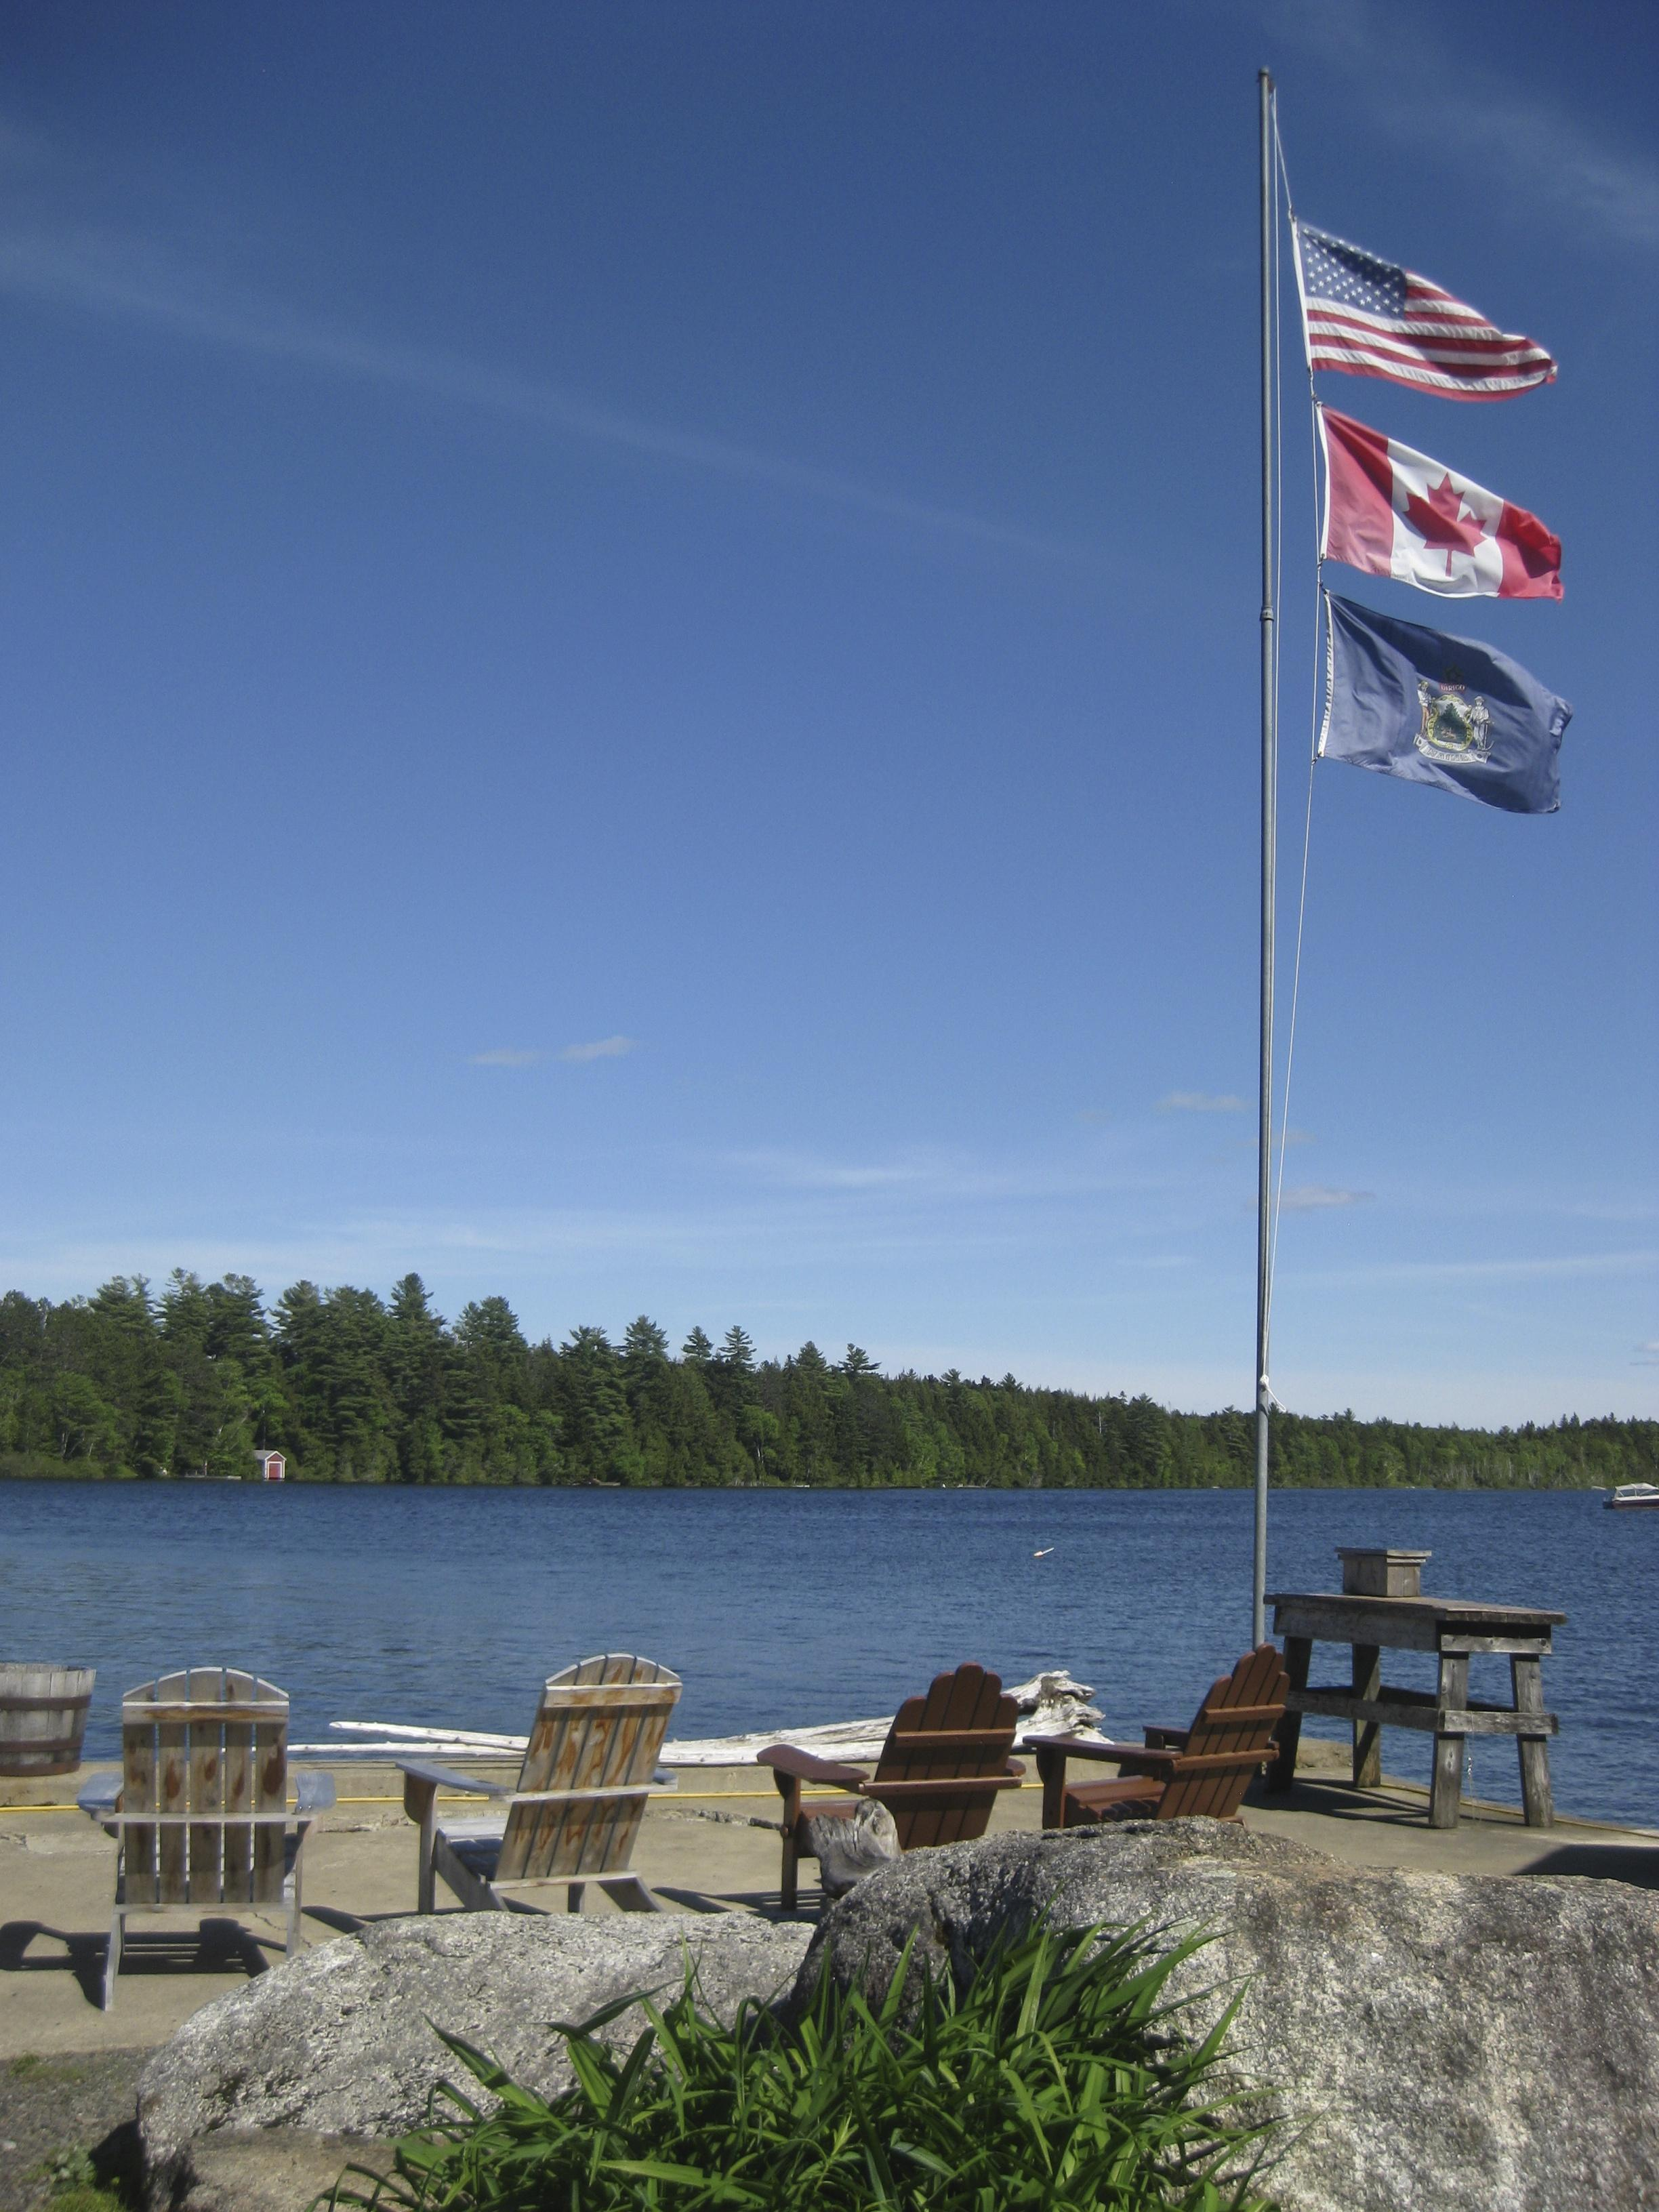 Maine, Unied States, and Canadian Flags